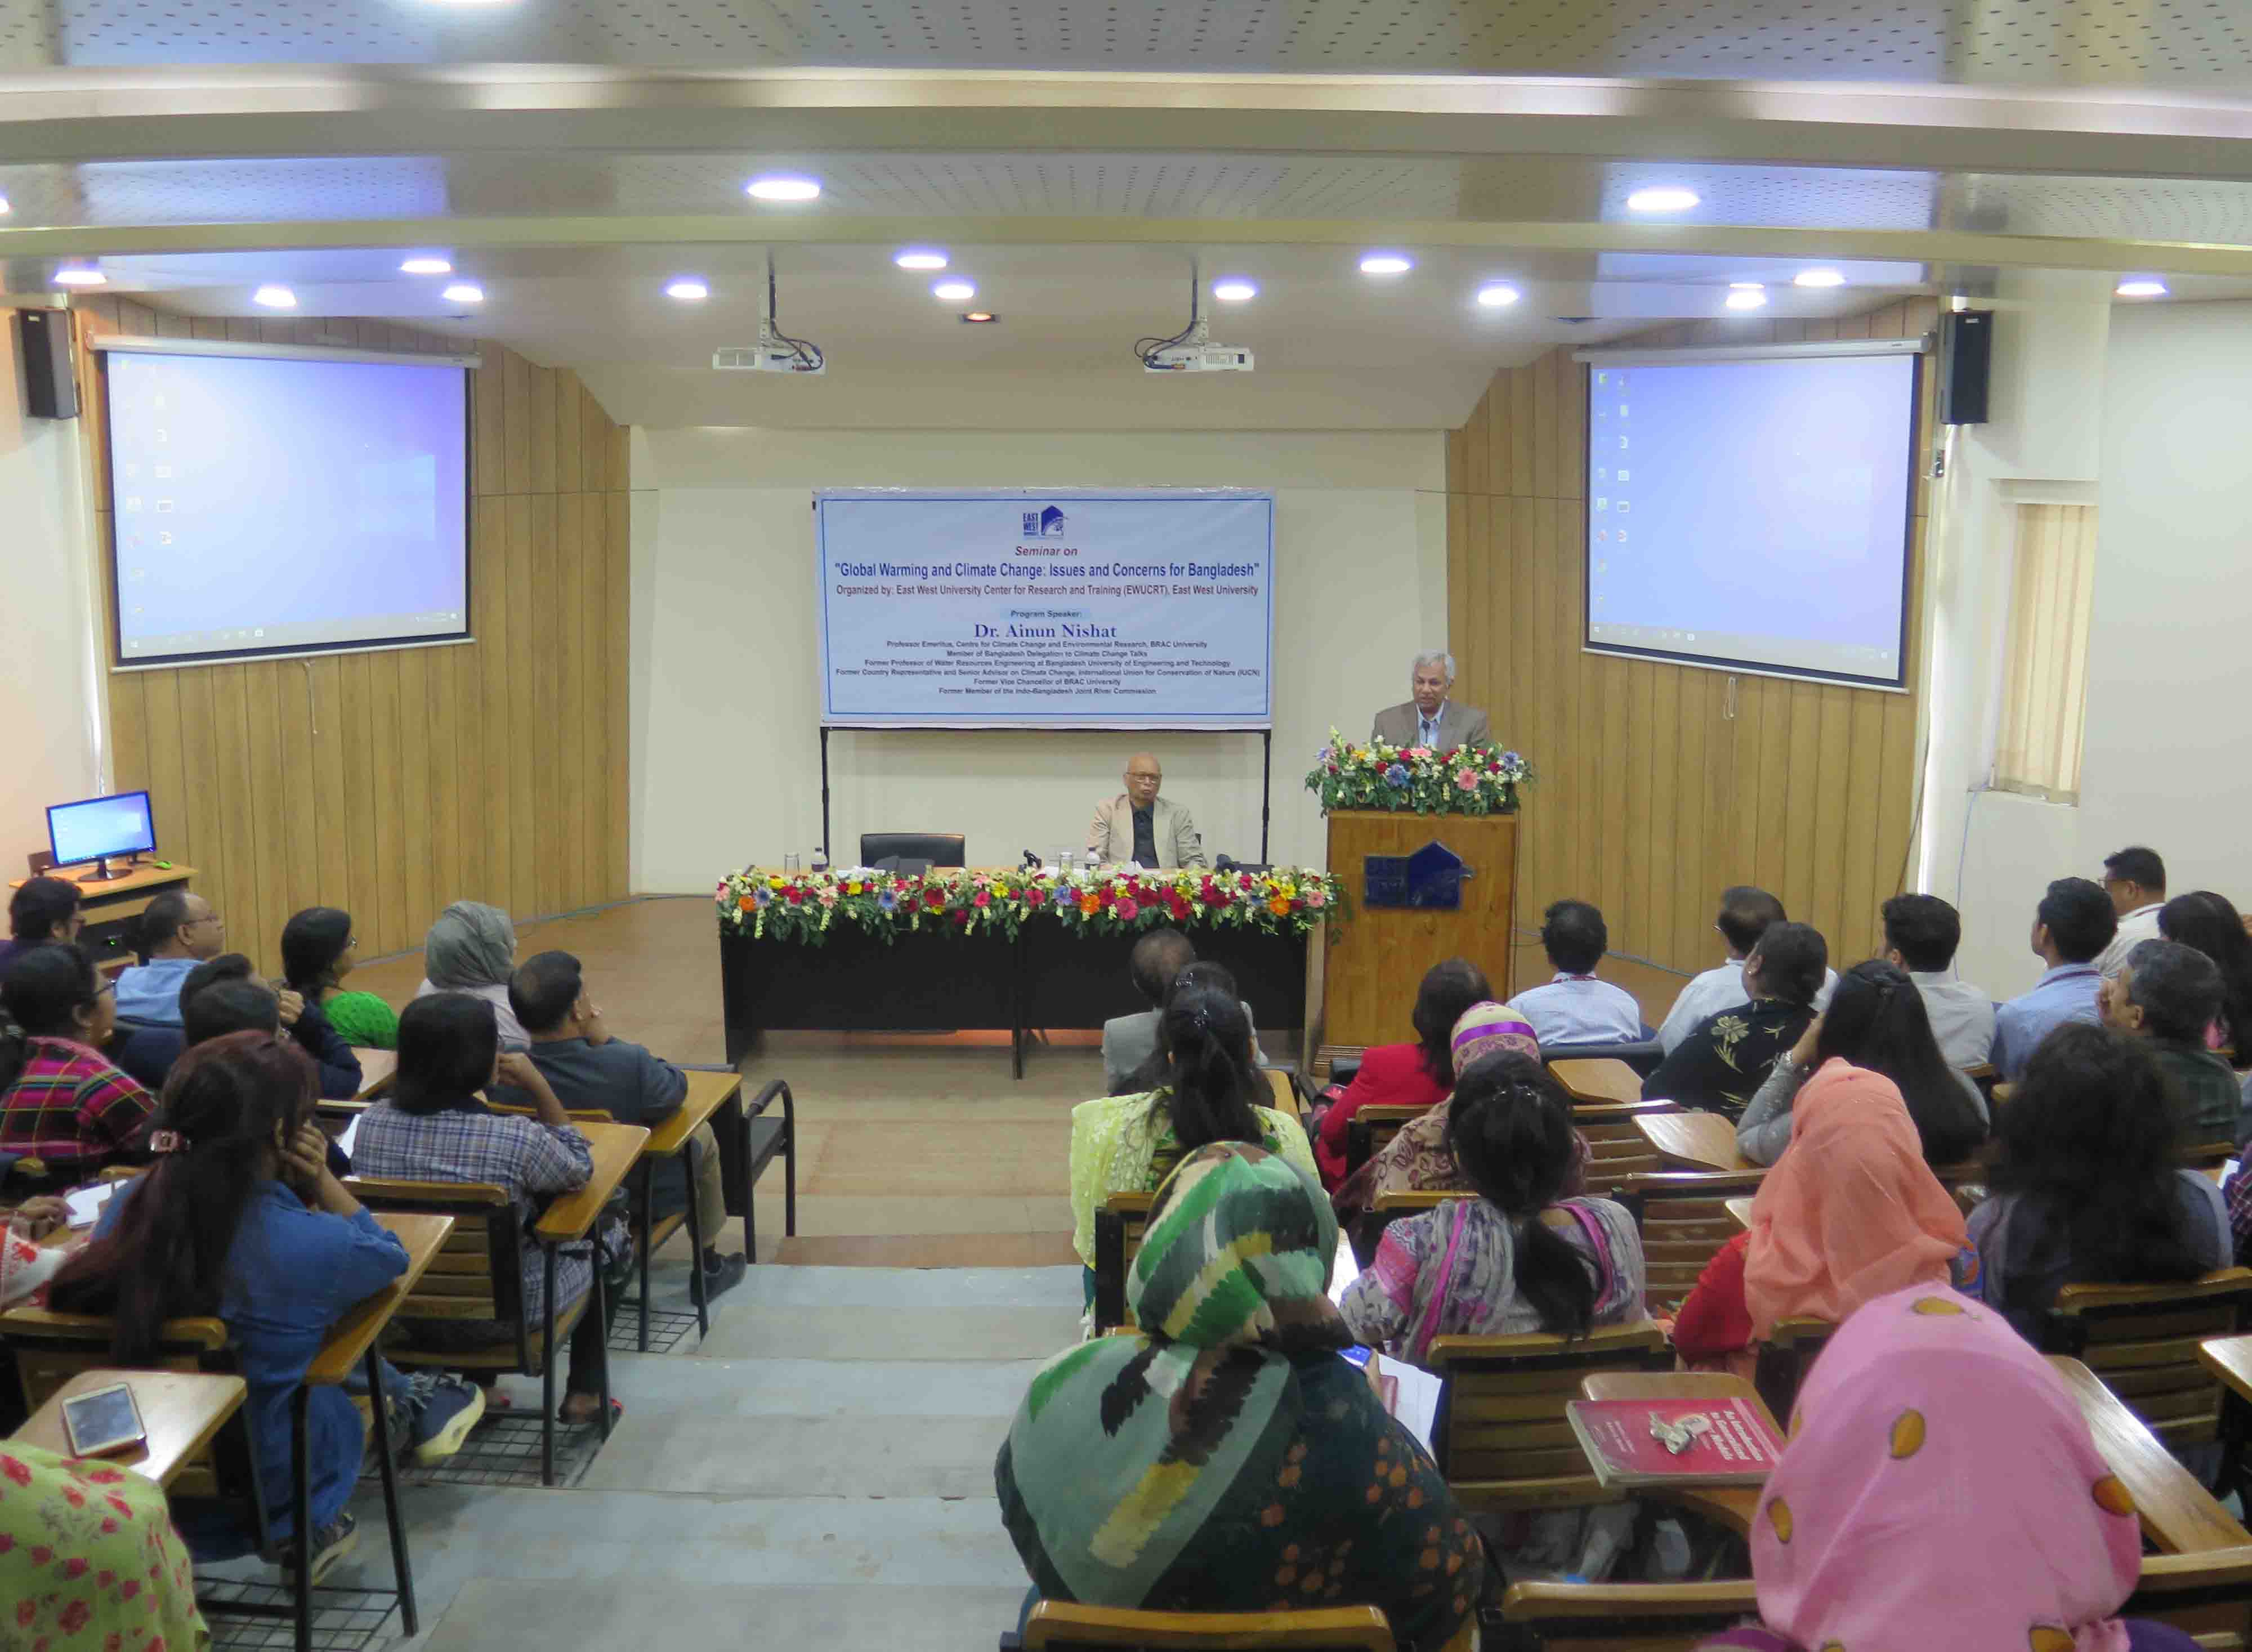 EWU-CRT Organizes a Knowledge Sharing Seminar on Climate Change